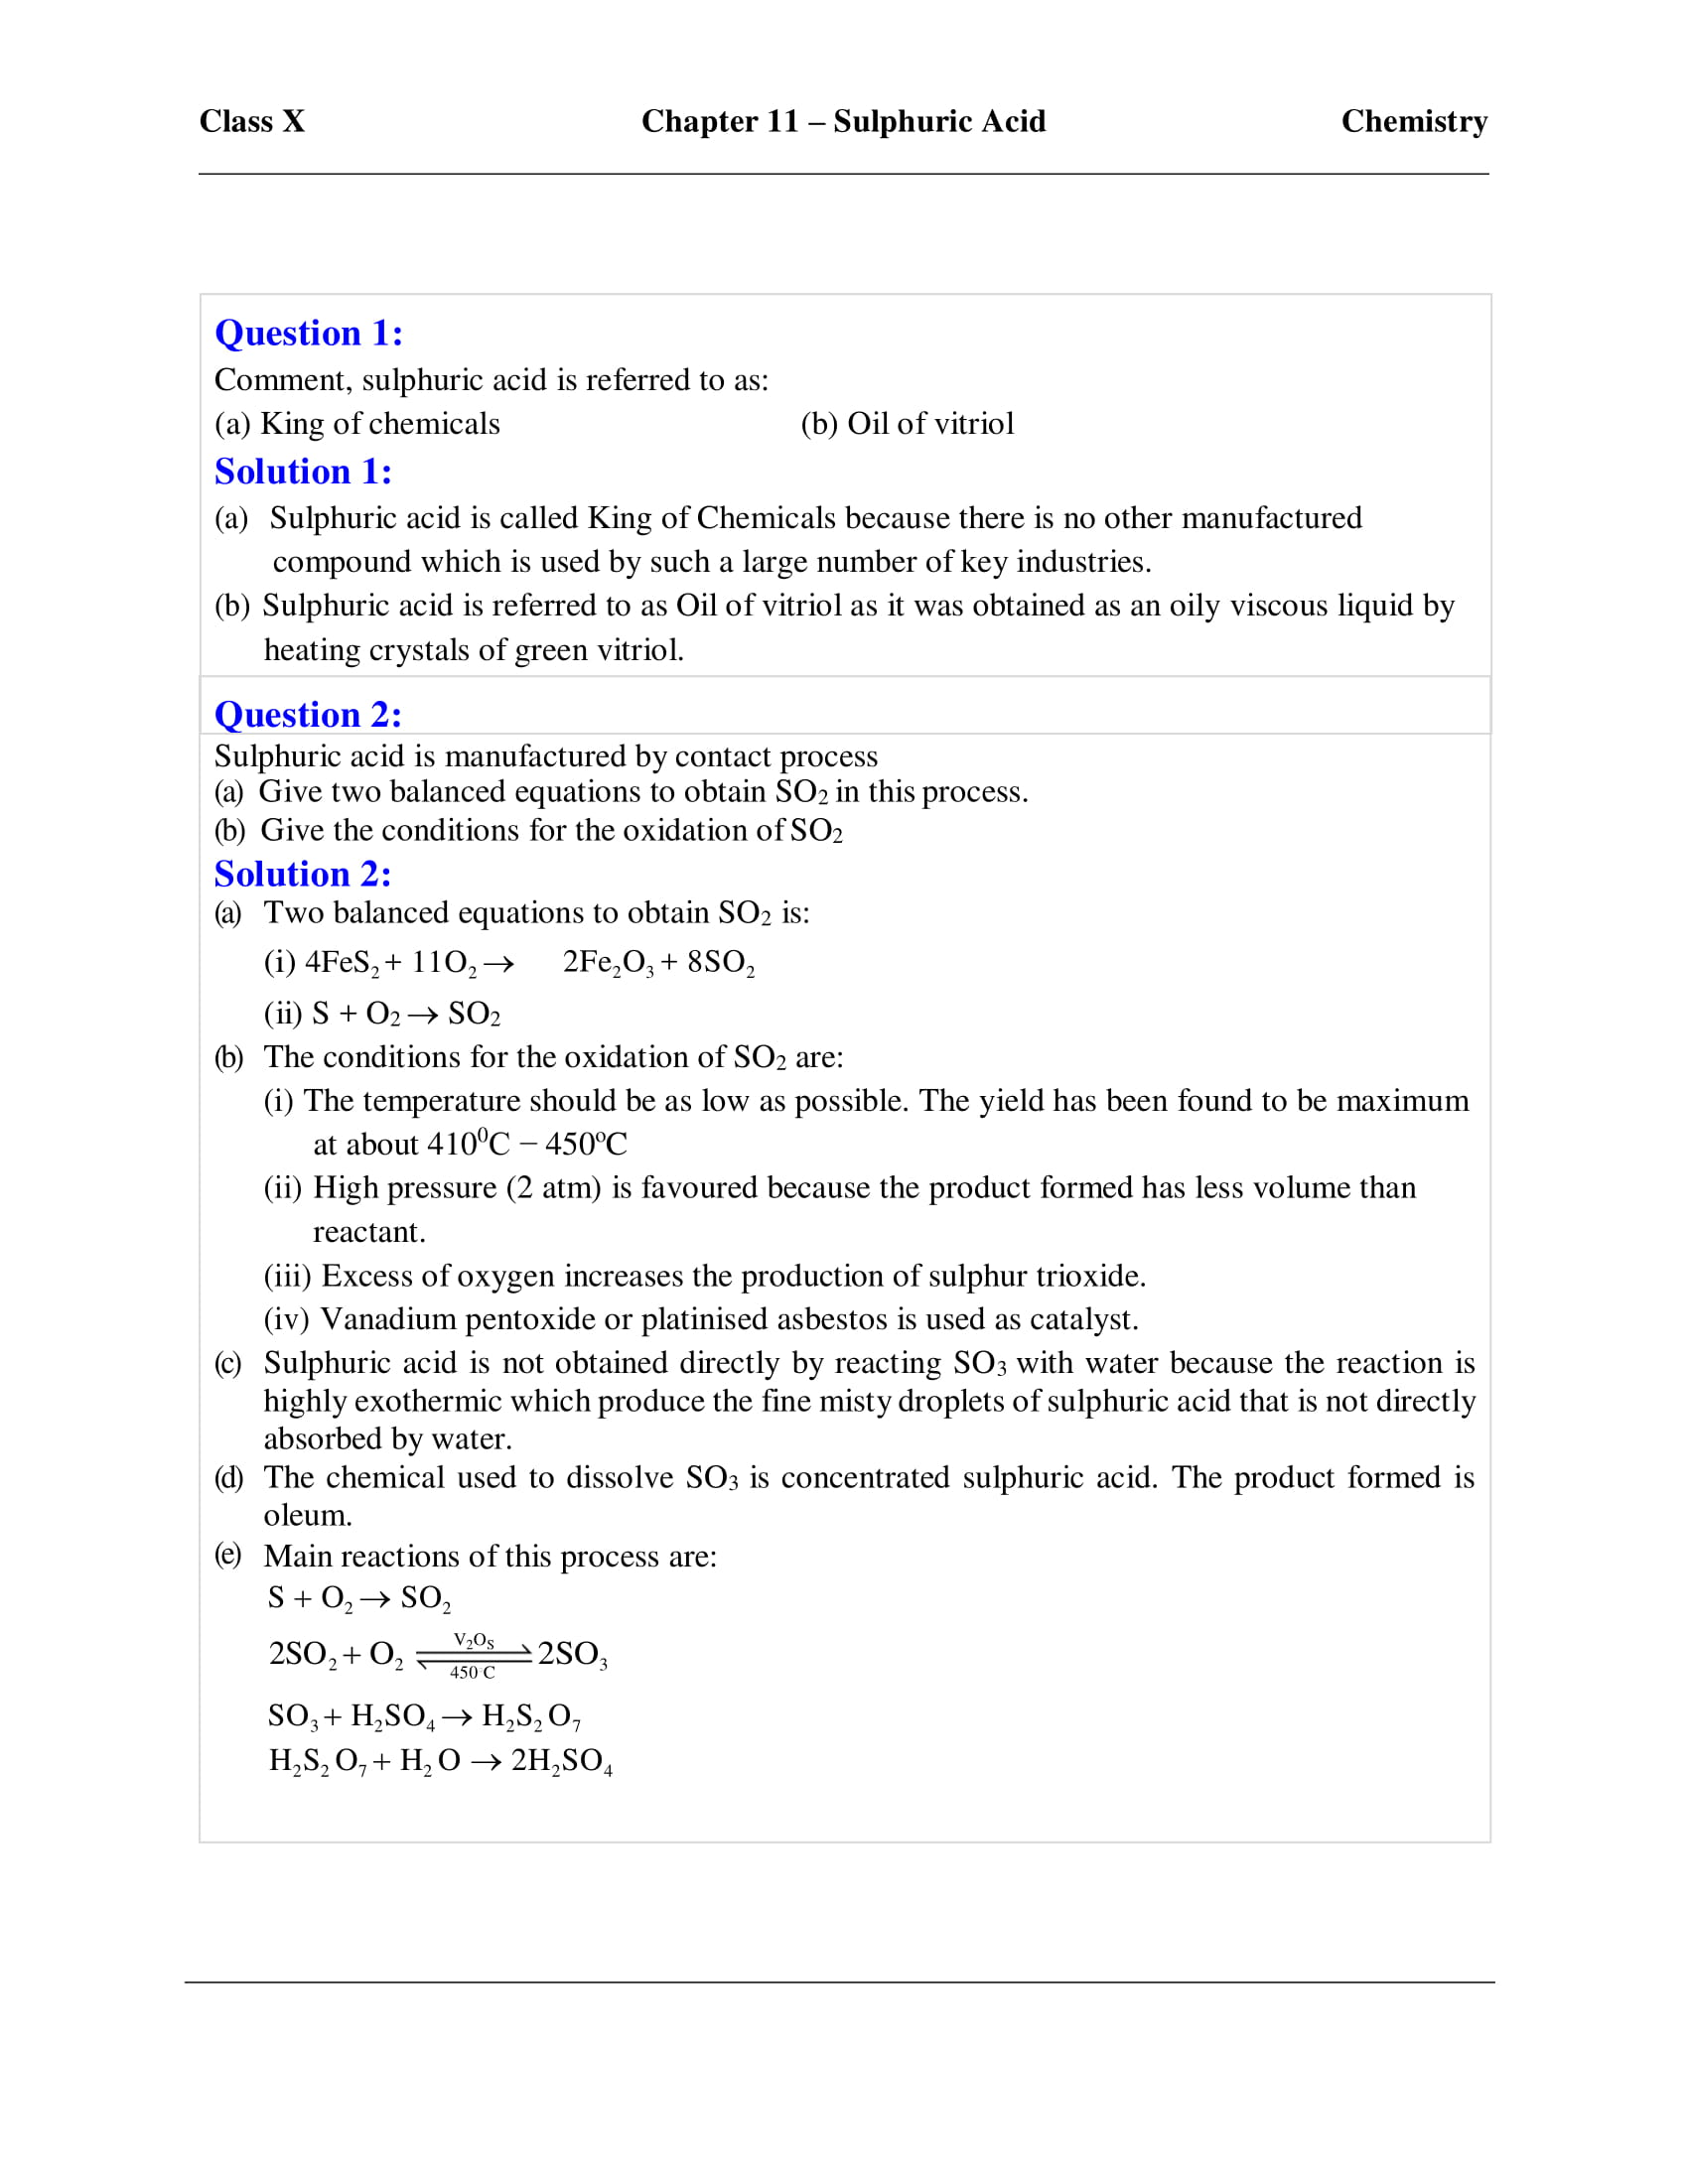 icse-selina-chemistry-solutions-class-10-chapter-11-sulphuric-acid-1